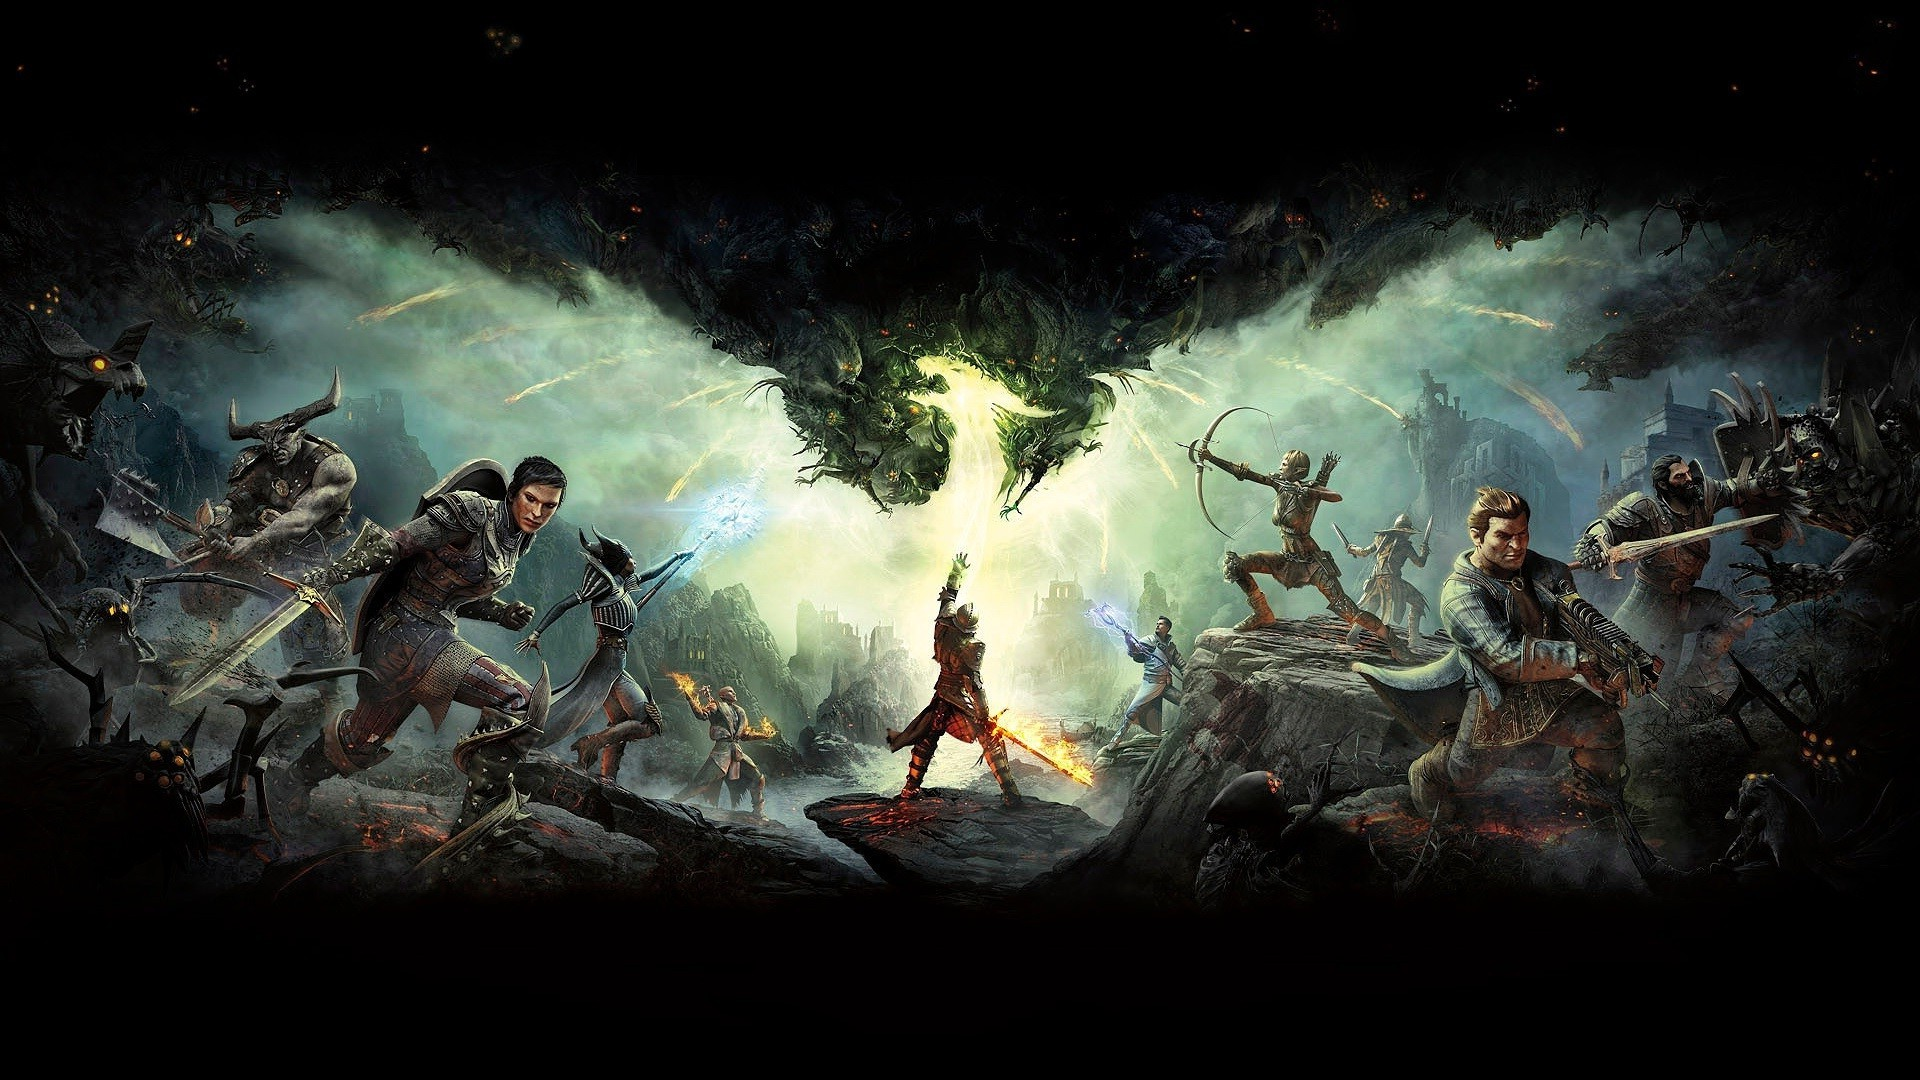 Great Dragon Age Inquisition Wallpaper | Full HD Pictures